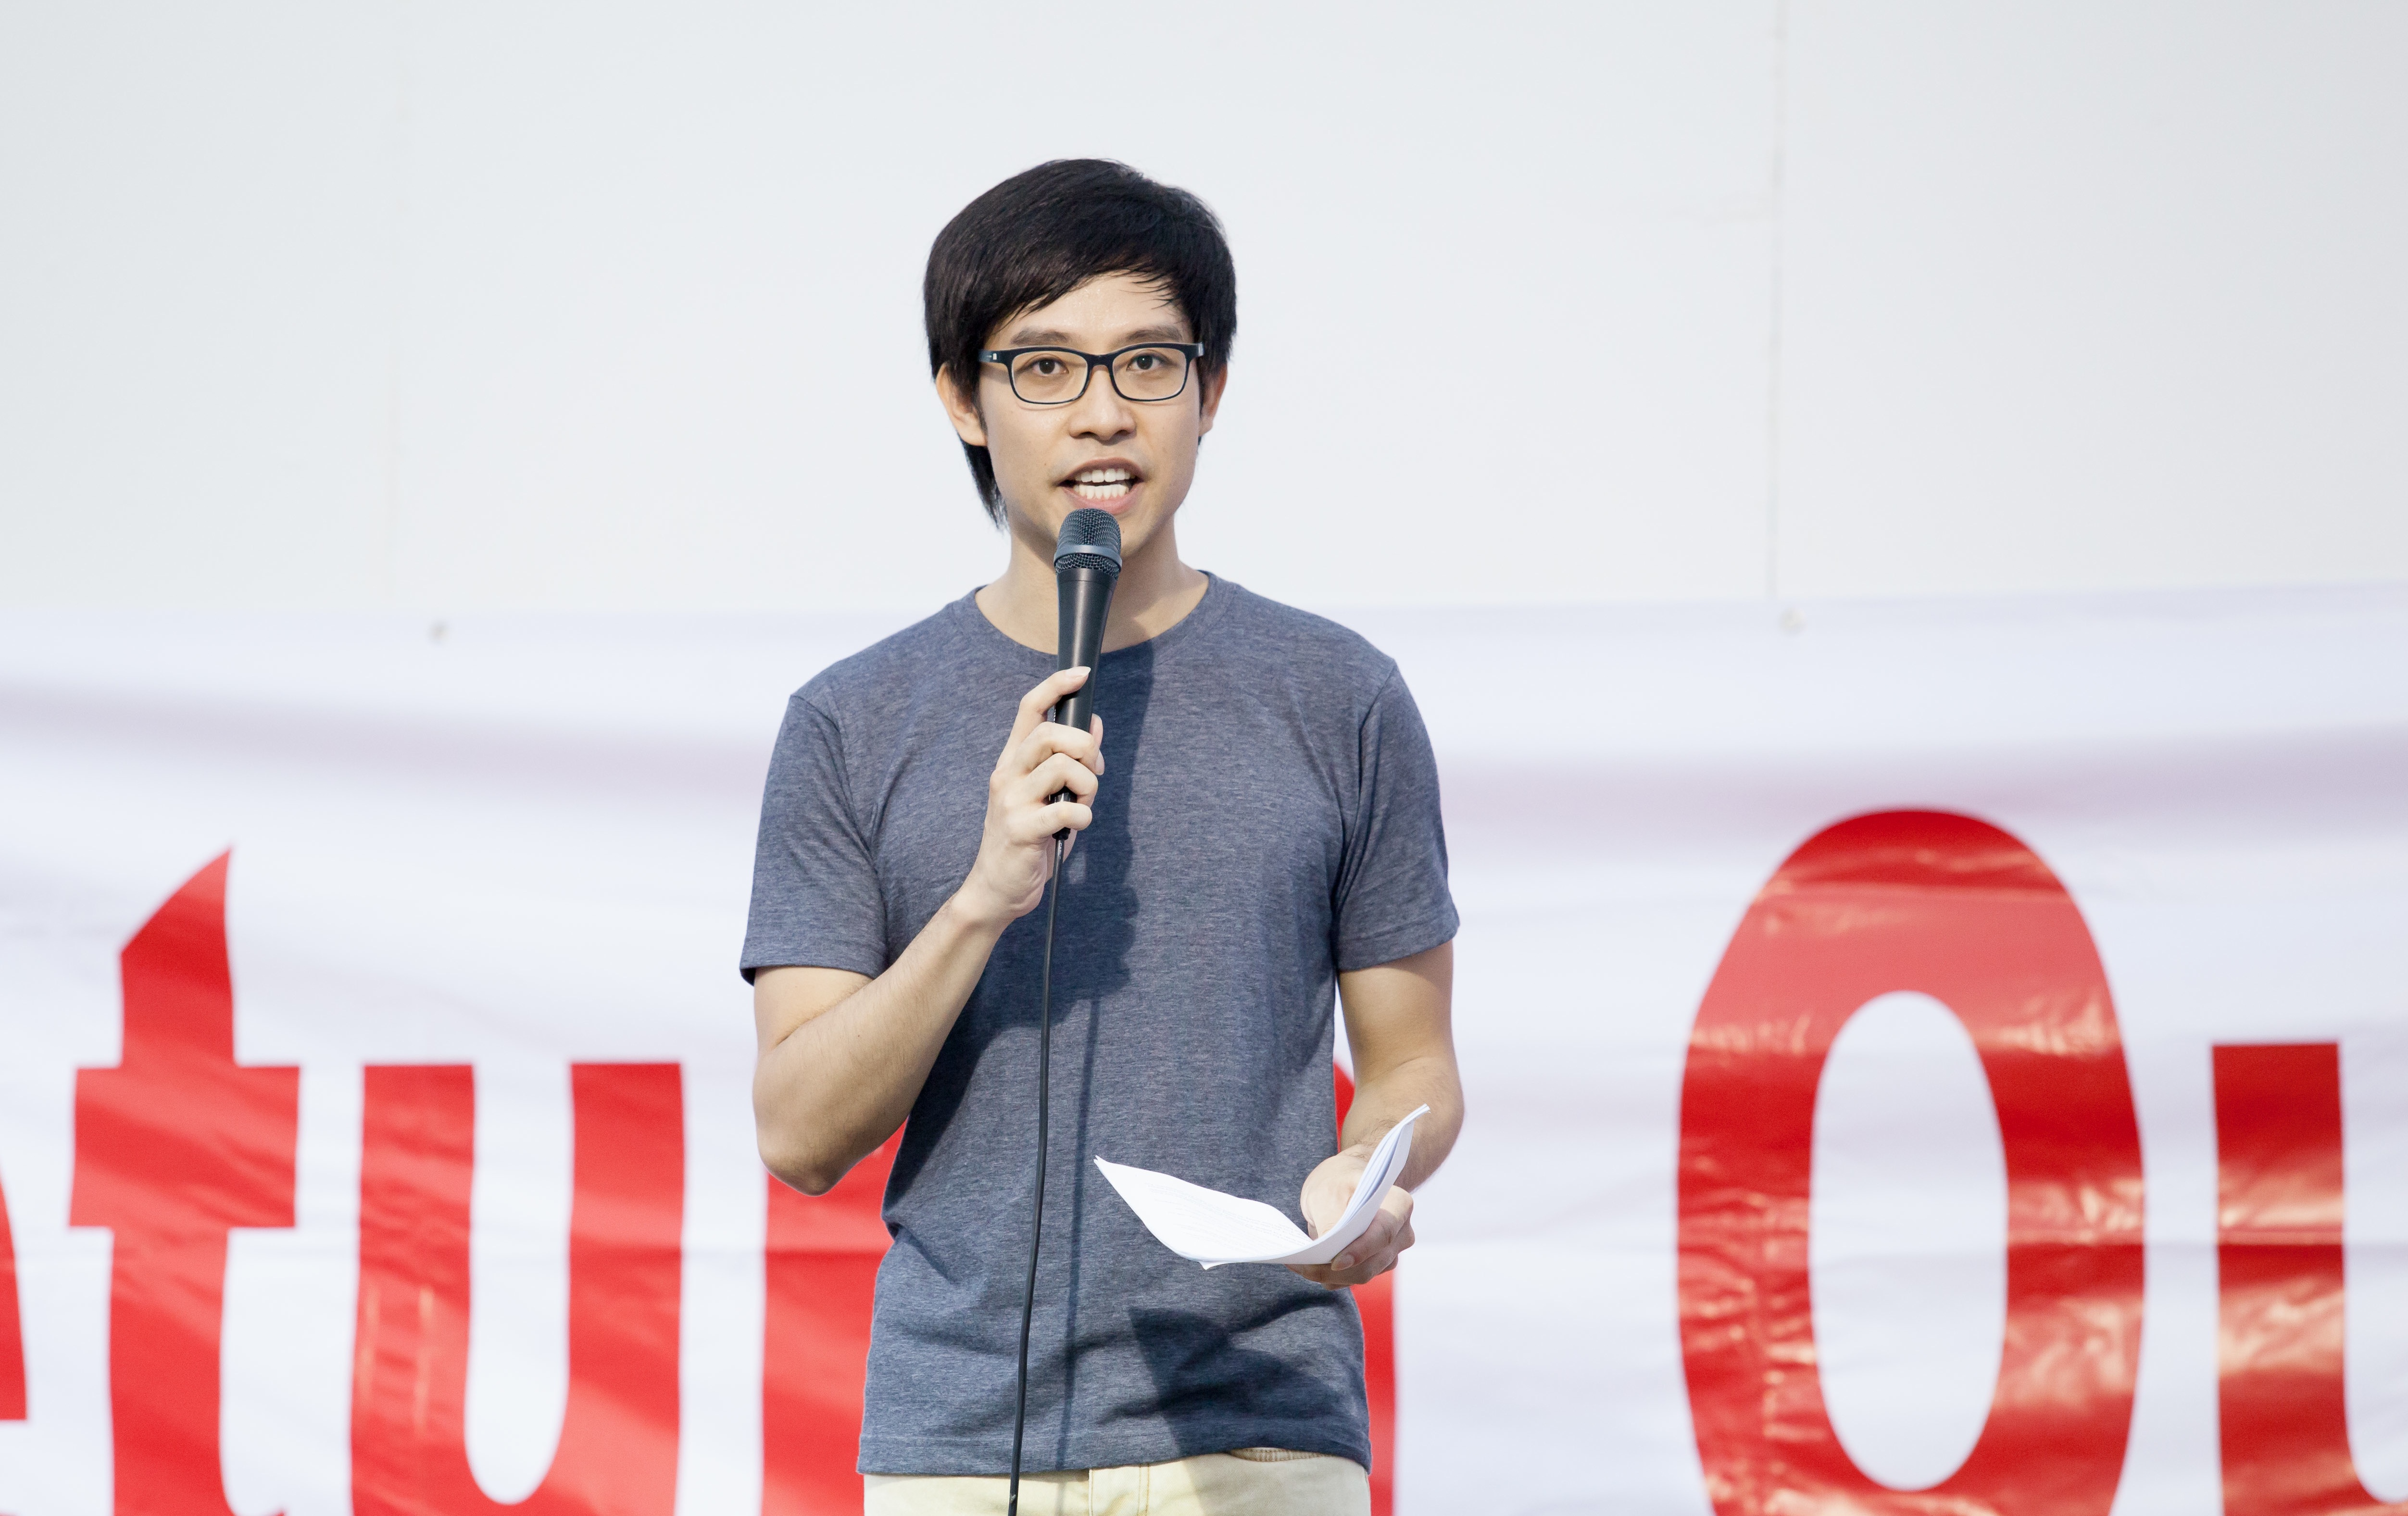 Singapore blogger Roy Ngerng at a rally in 2014.